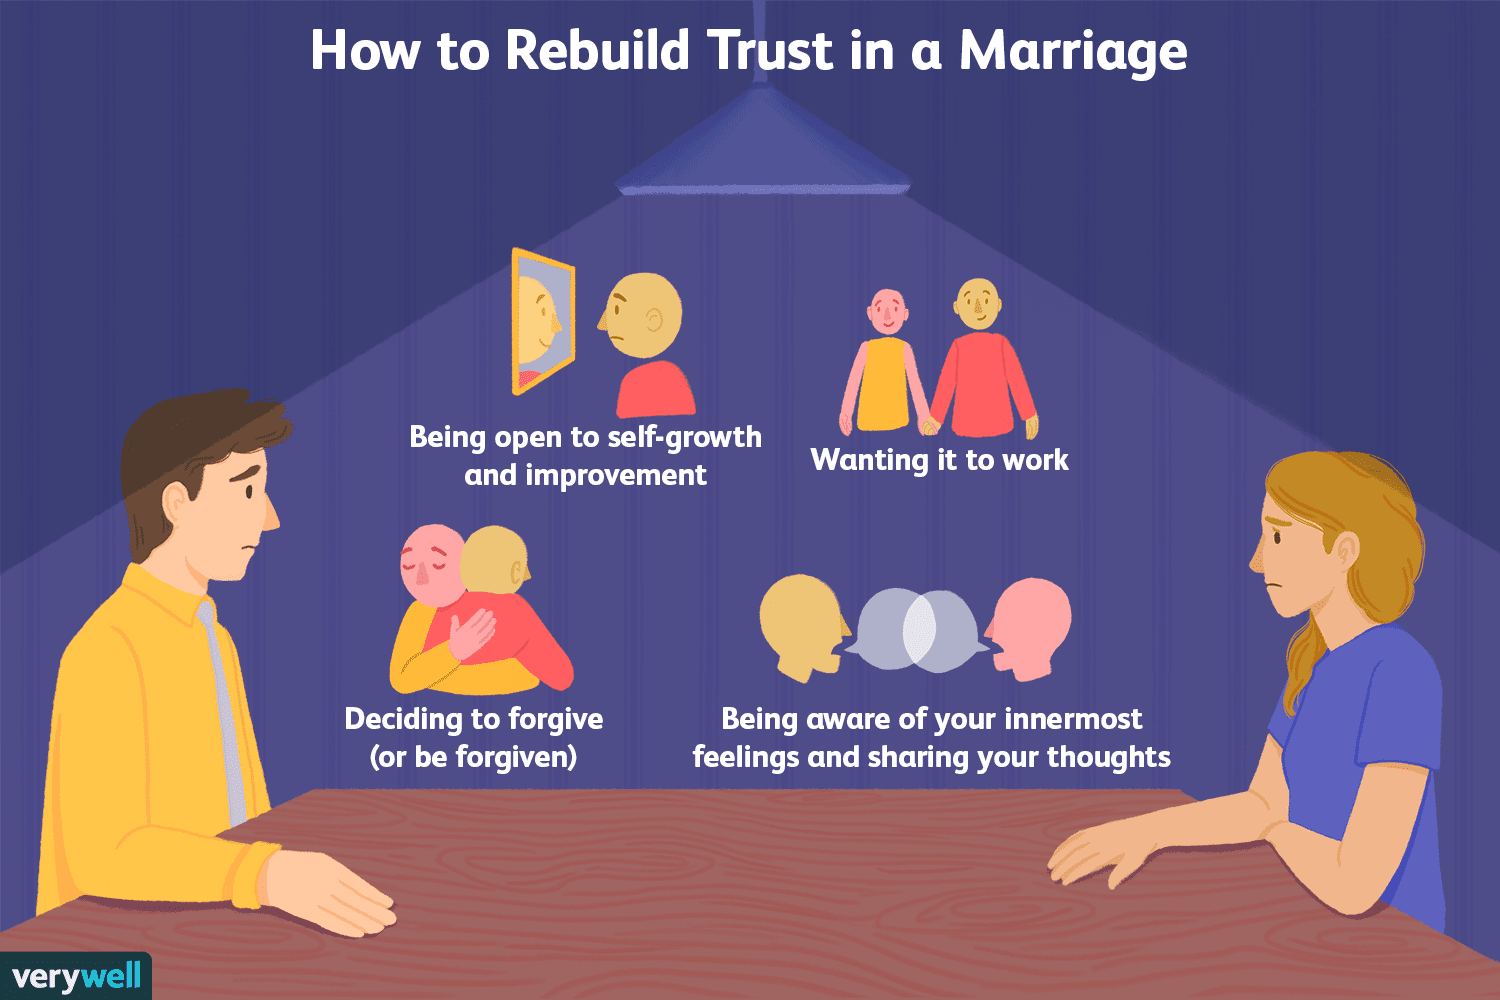 Cheating, broken promises, or lies do not have to lead to